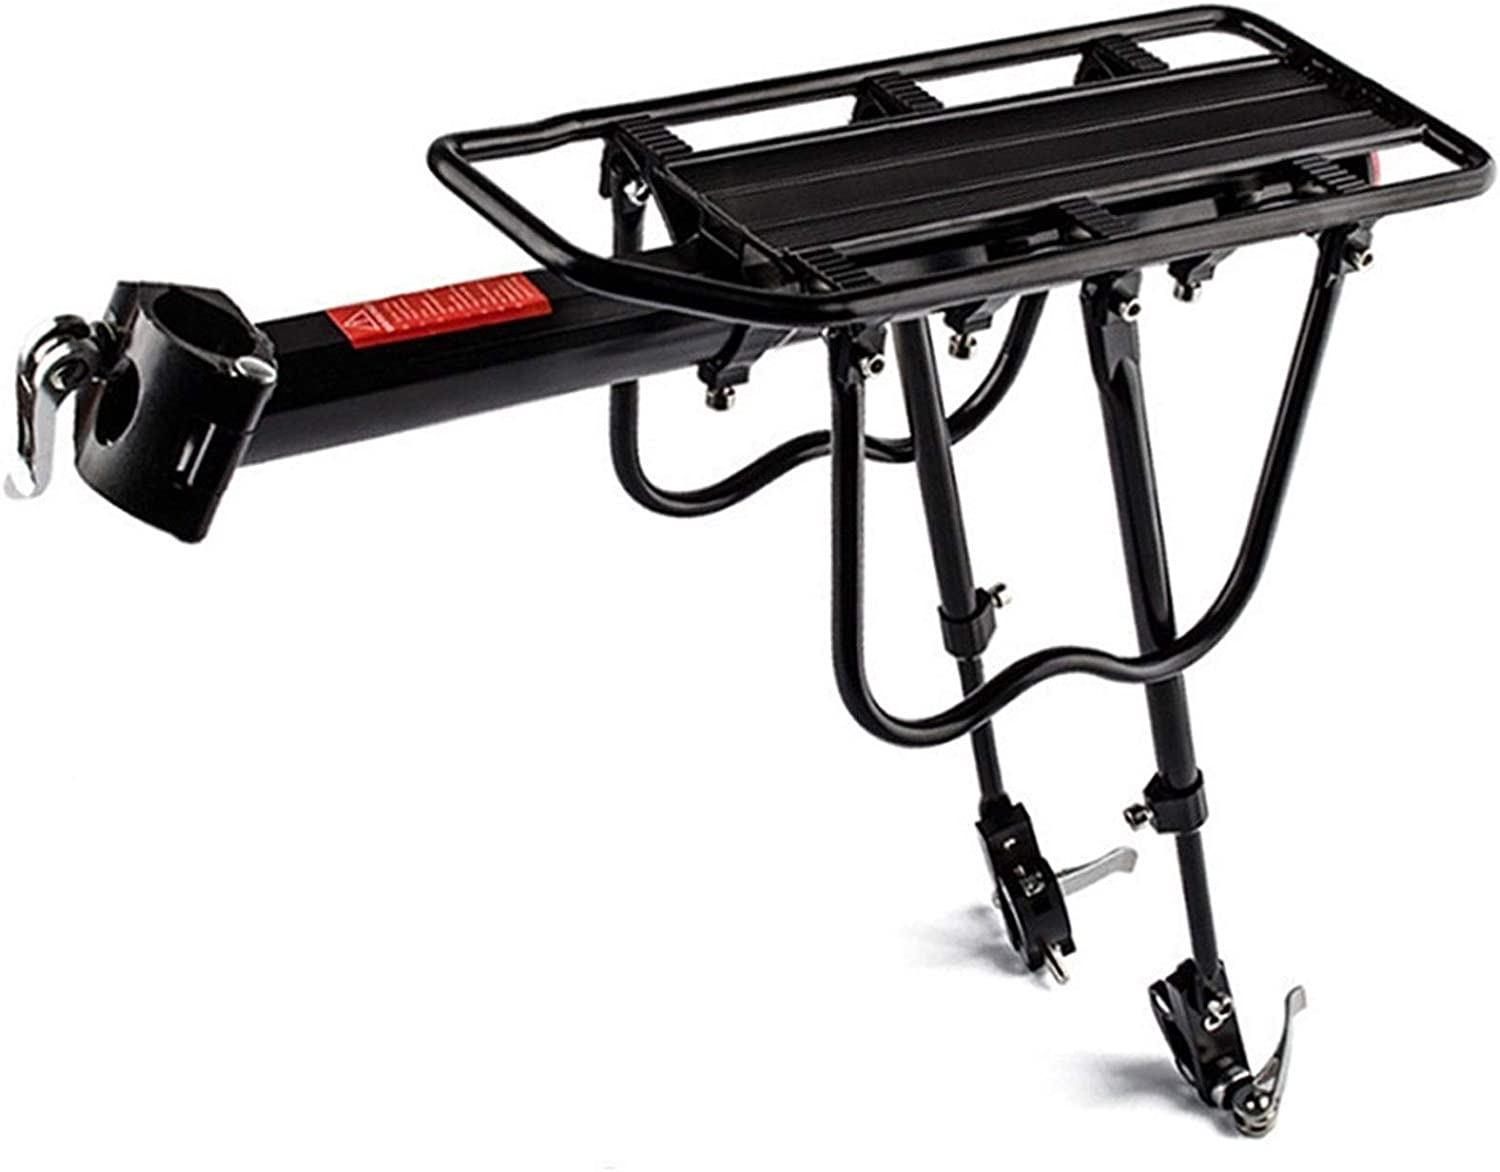 LLF Bicycle Rear Time sale Rack Carrier and with Mudguards Adju Reflector 2021